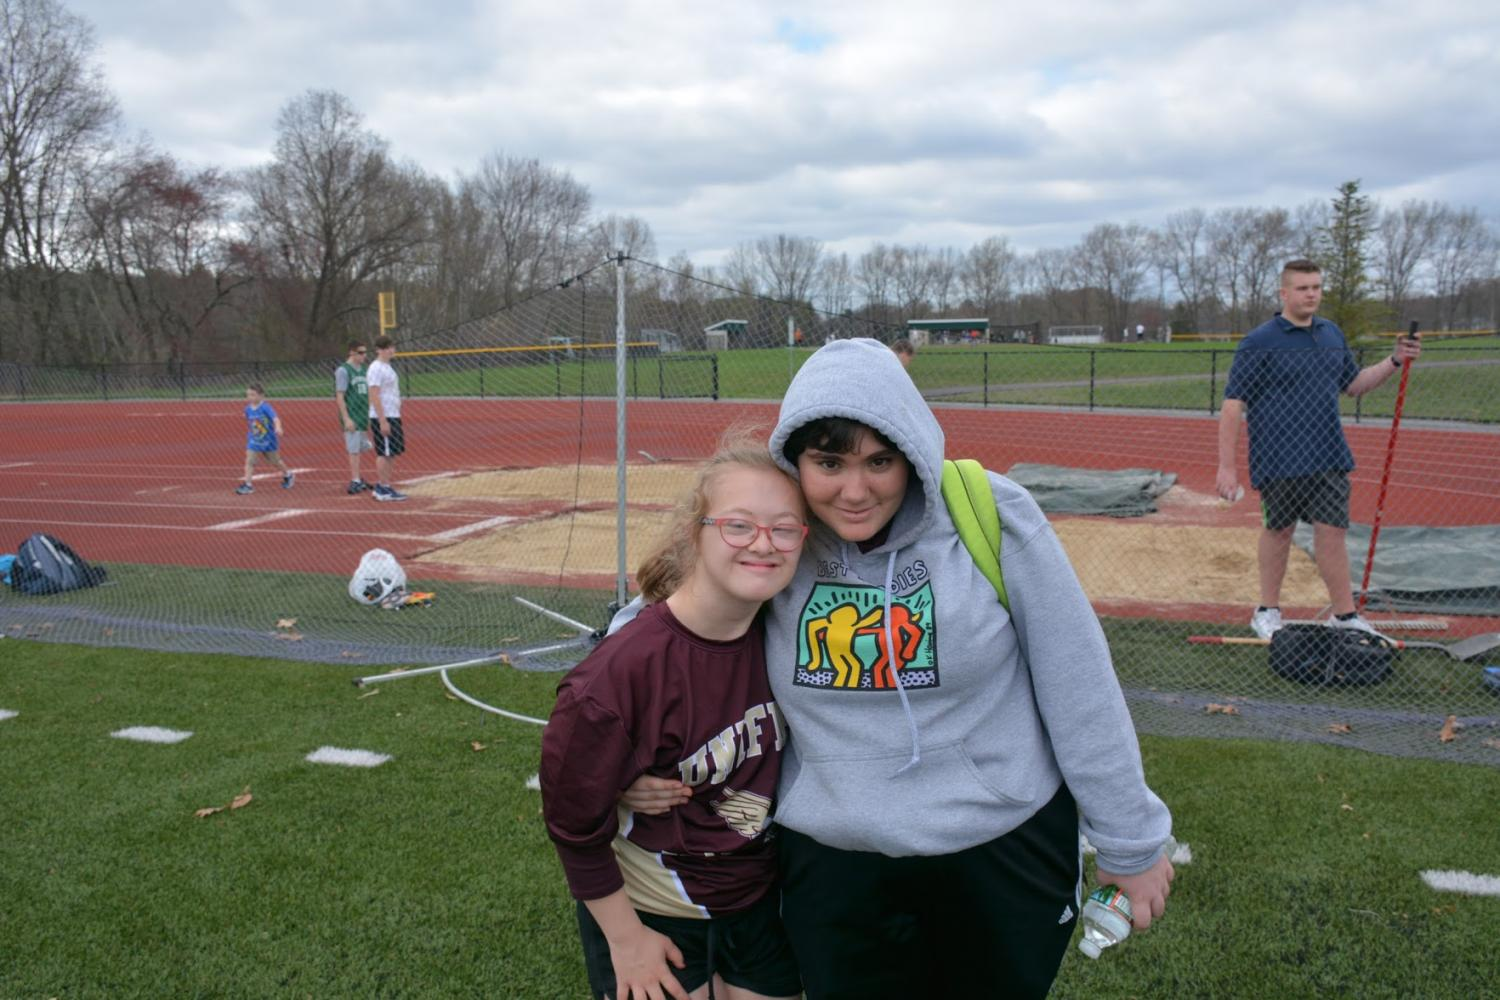 Unified+track+strives+to+support+camaraderie+and+friendly+competition+throughout+the+community.+